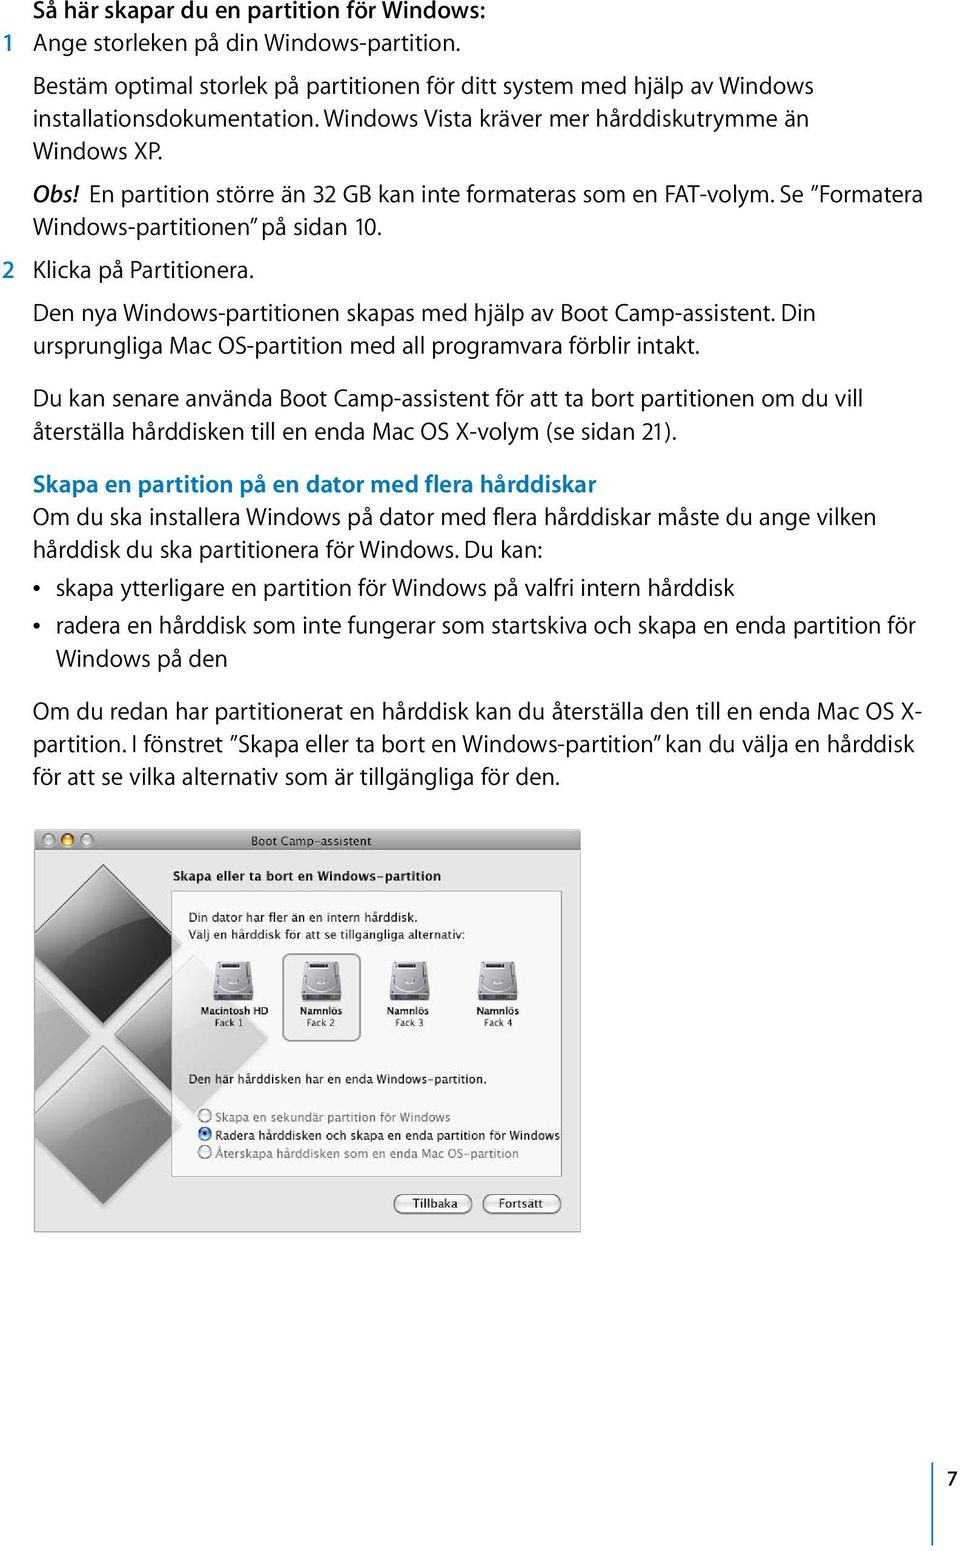 Den nya Windows-partitionen skapas med hjälp av Boot Camp-assistent. Din ursprungliga Mac OS-partition med all programvara förblir intakt.